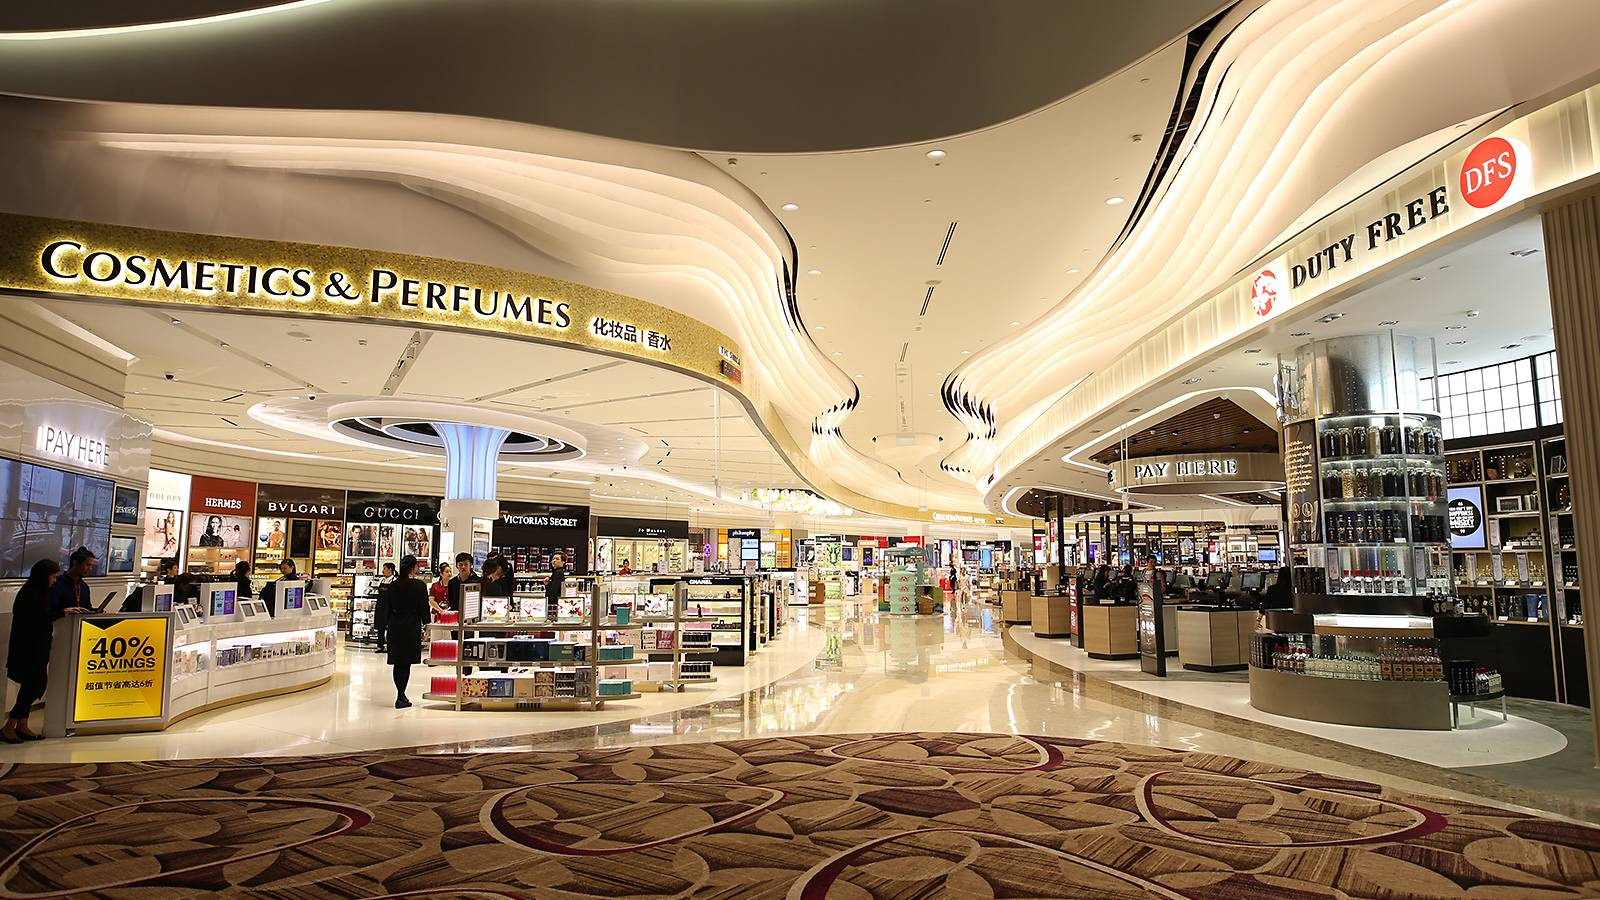 Pick up beauty products at The Shilla Duty Free shop